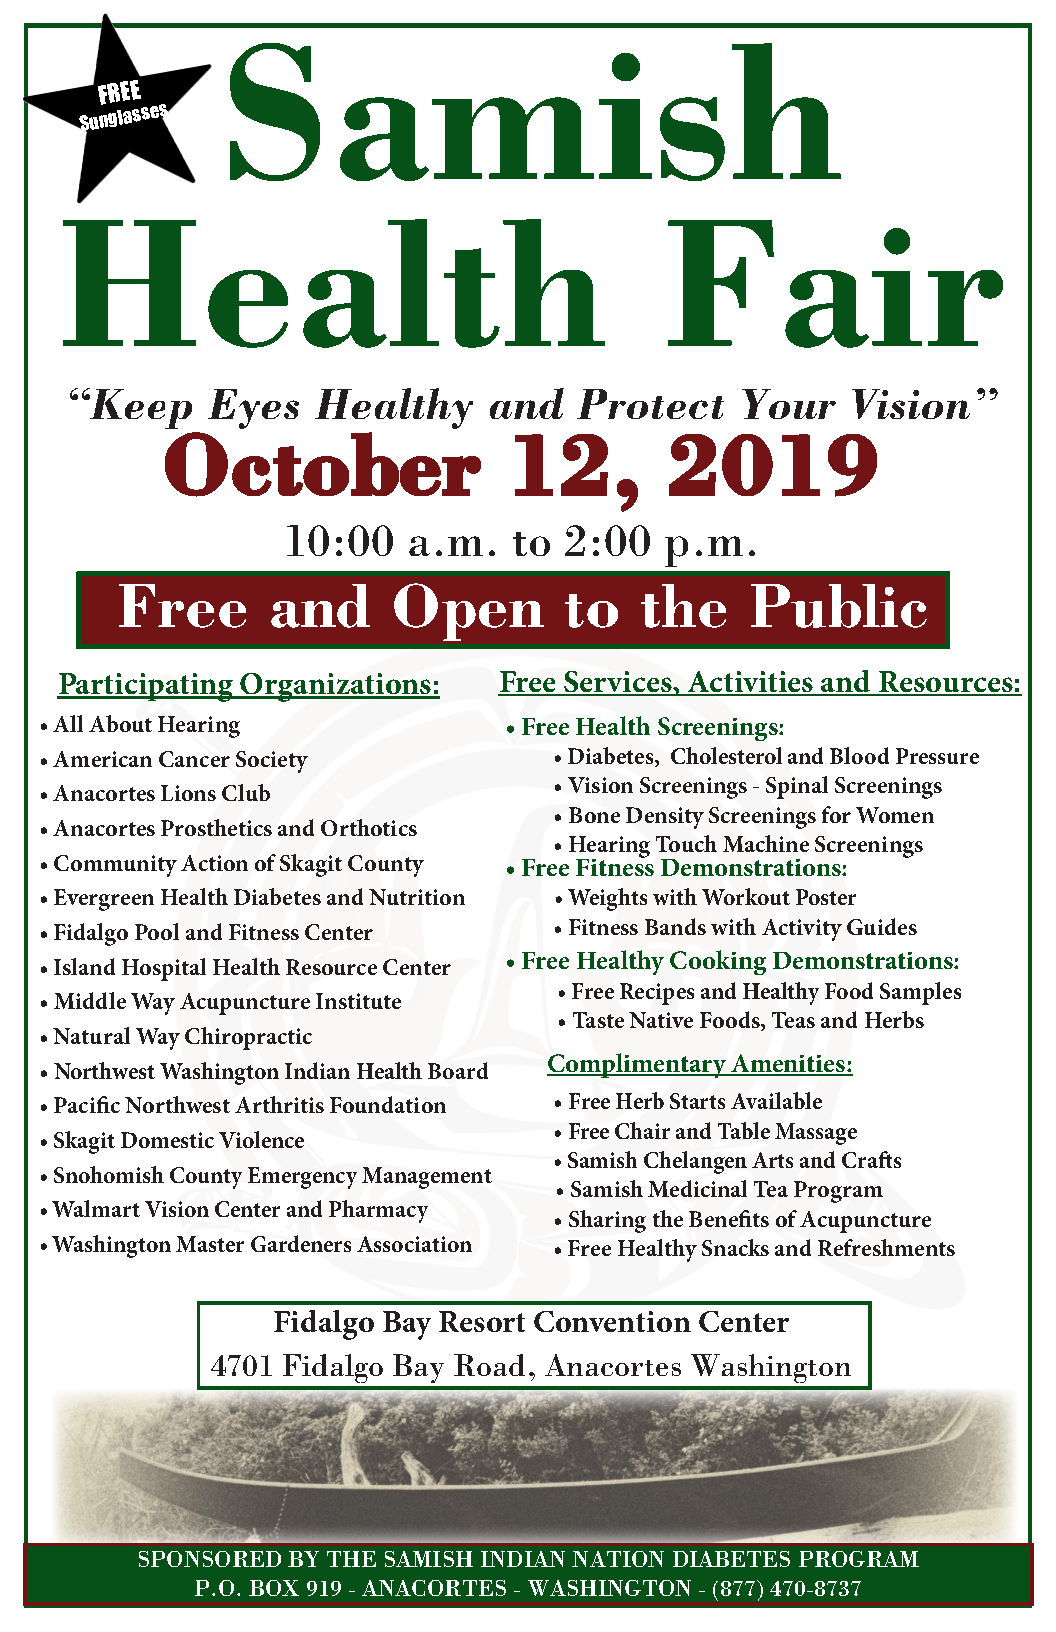 Samish Health Fair 2019